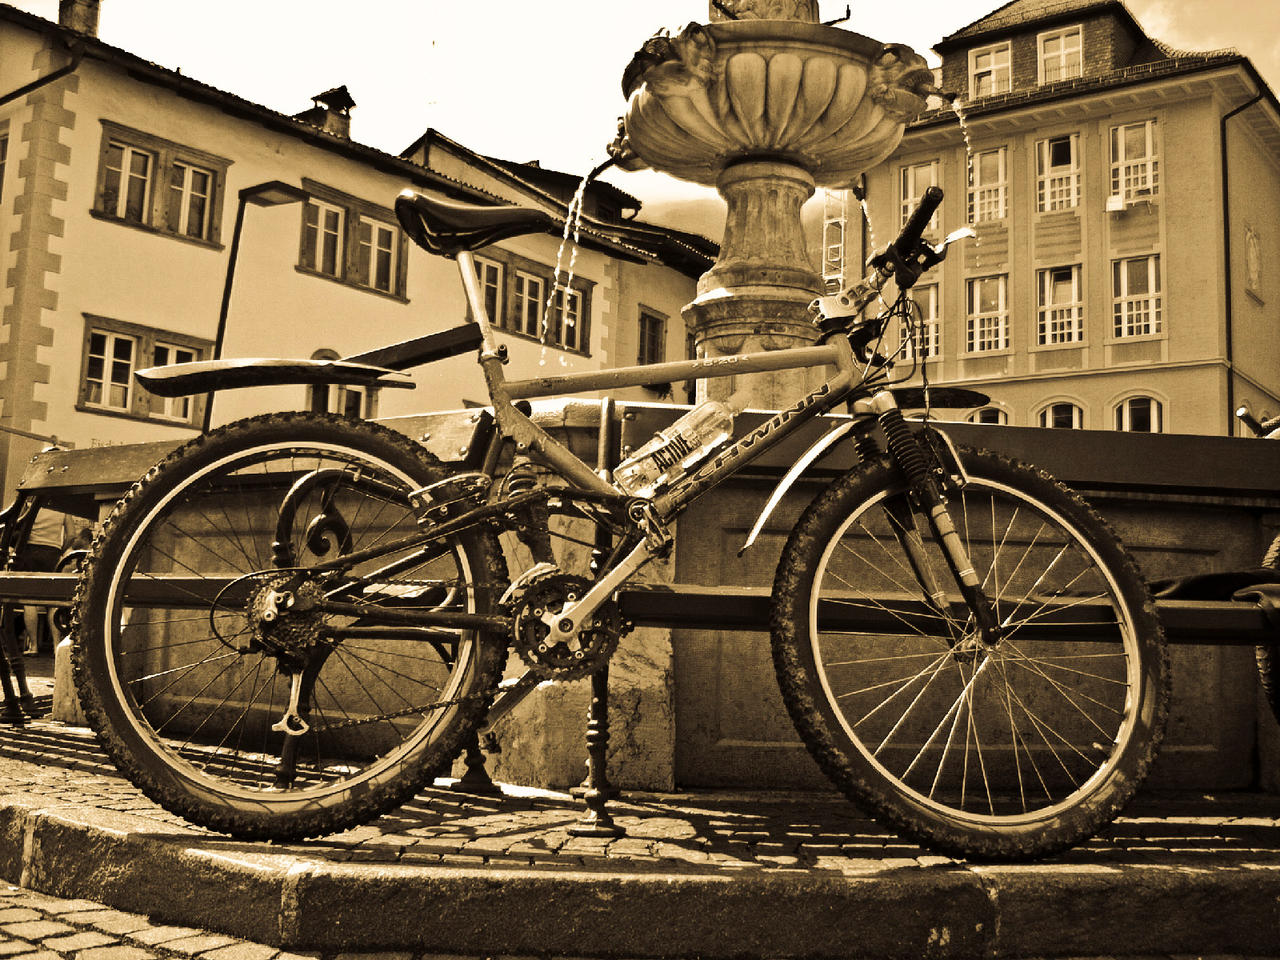 My old Bike and Me in Caldaro by realschmied on deviantART